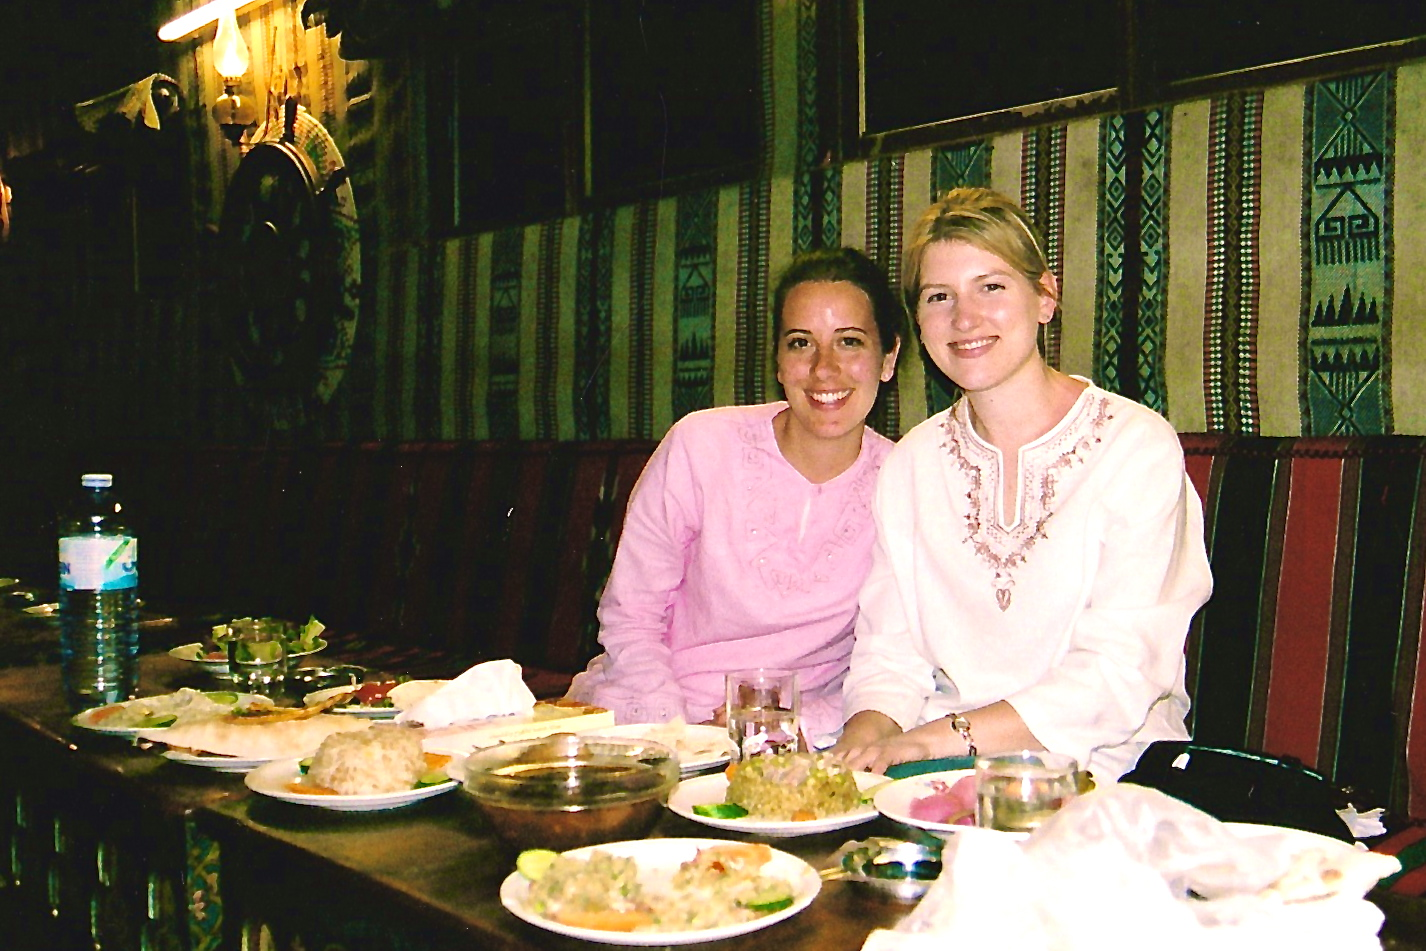 Enjoying a Middle Eastern meal with a friend